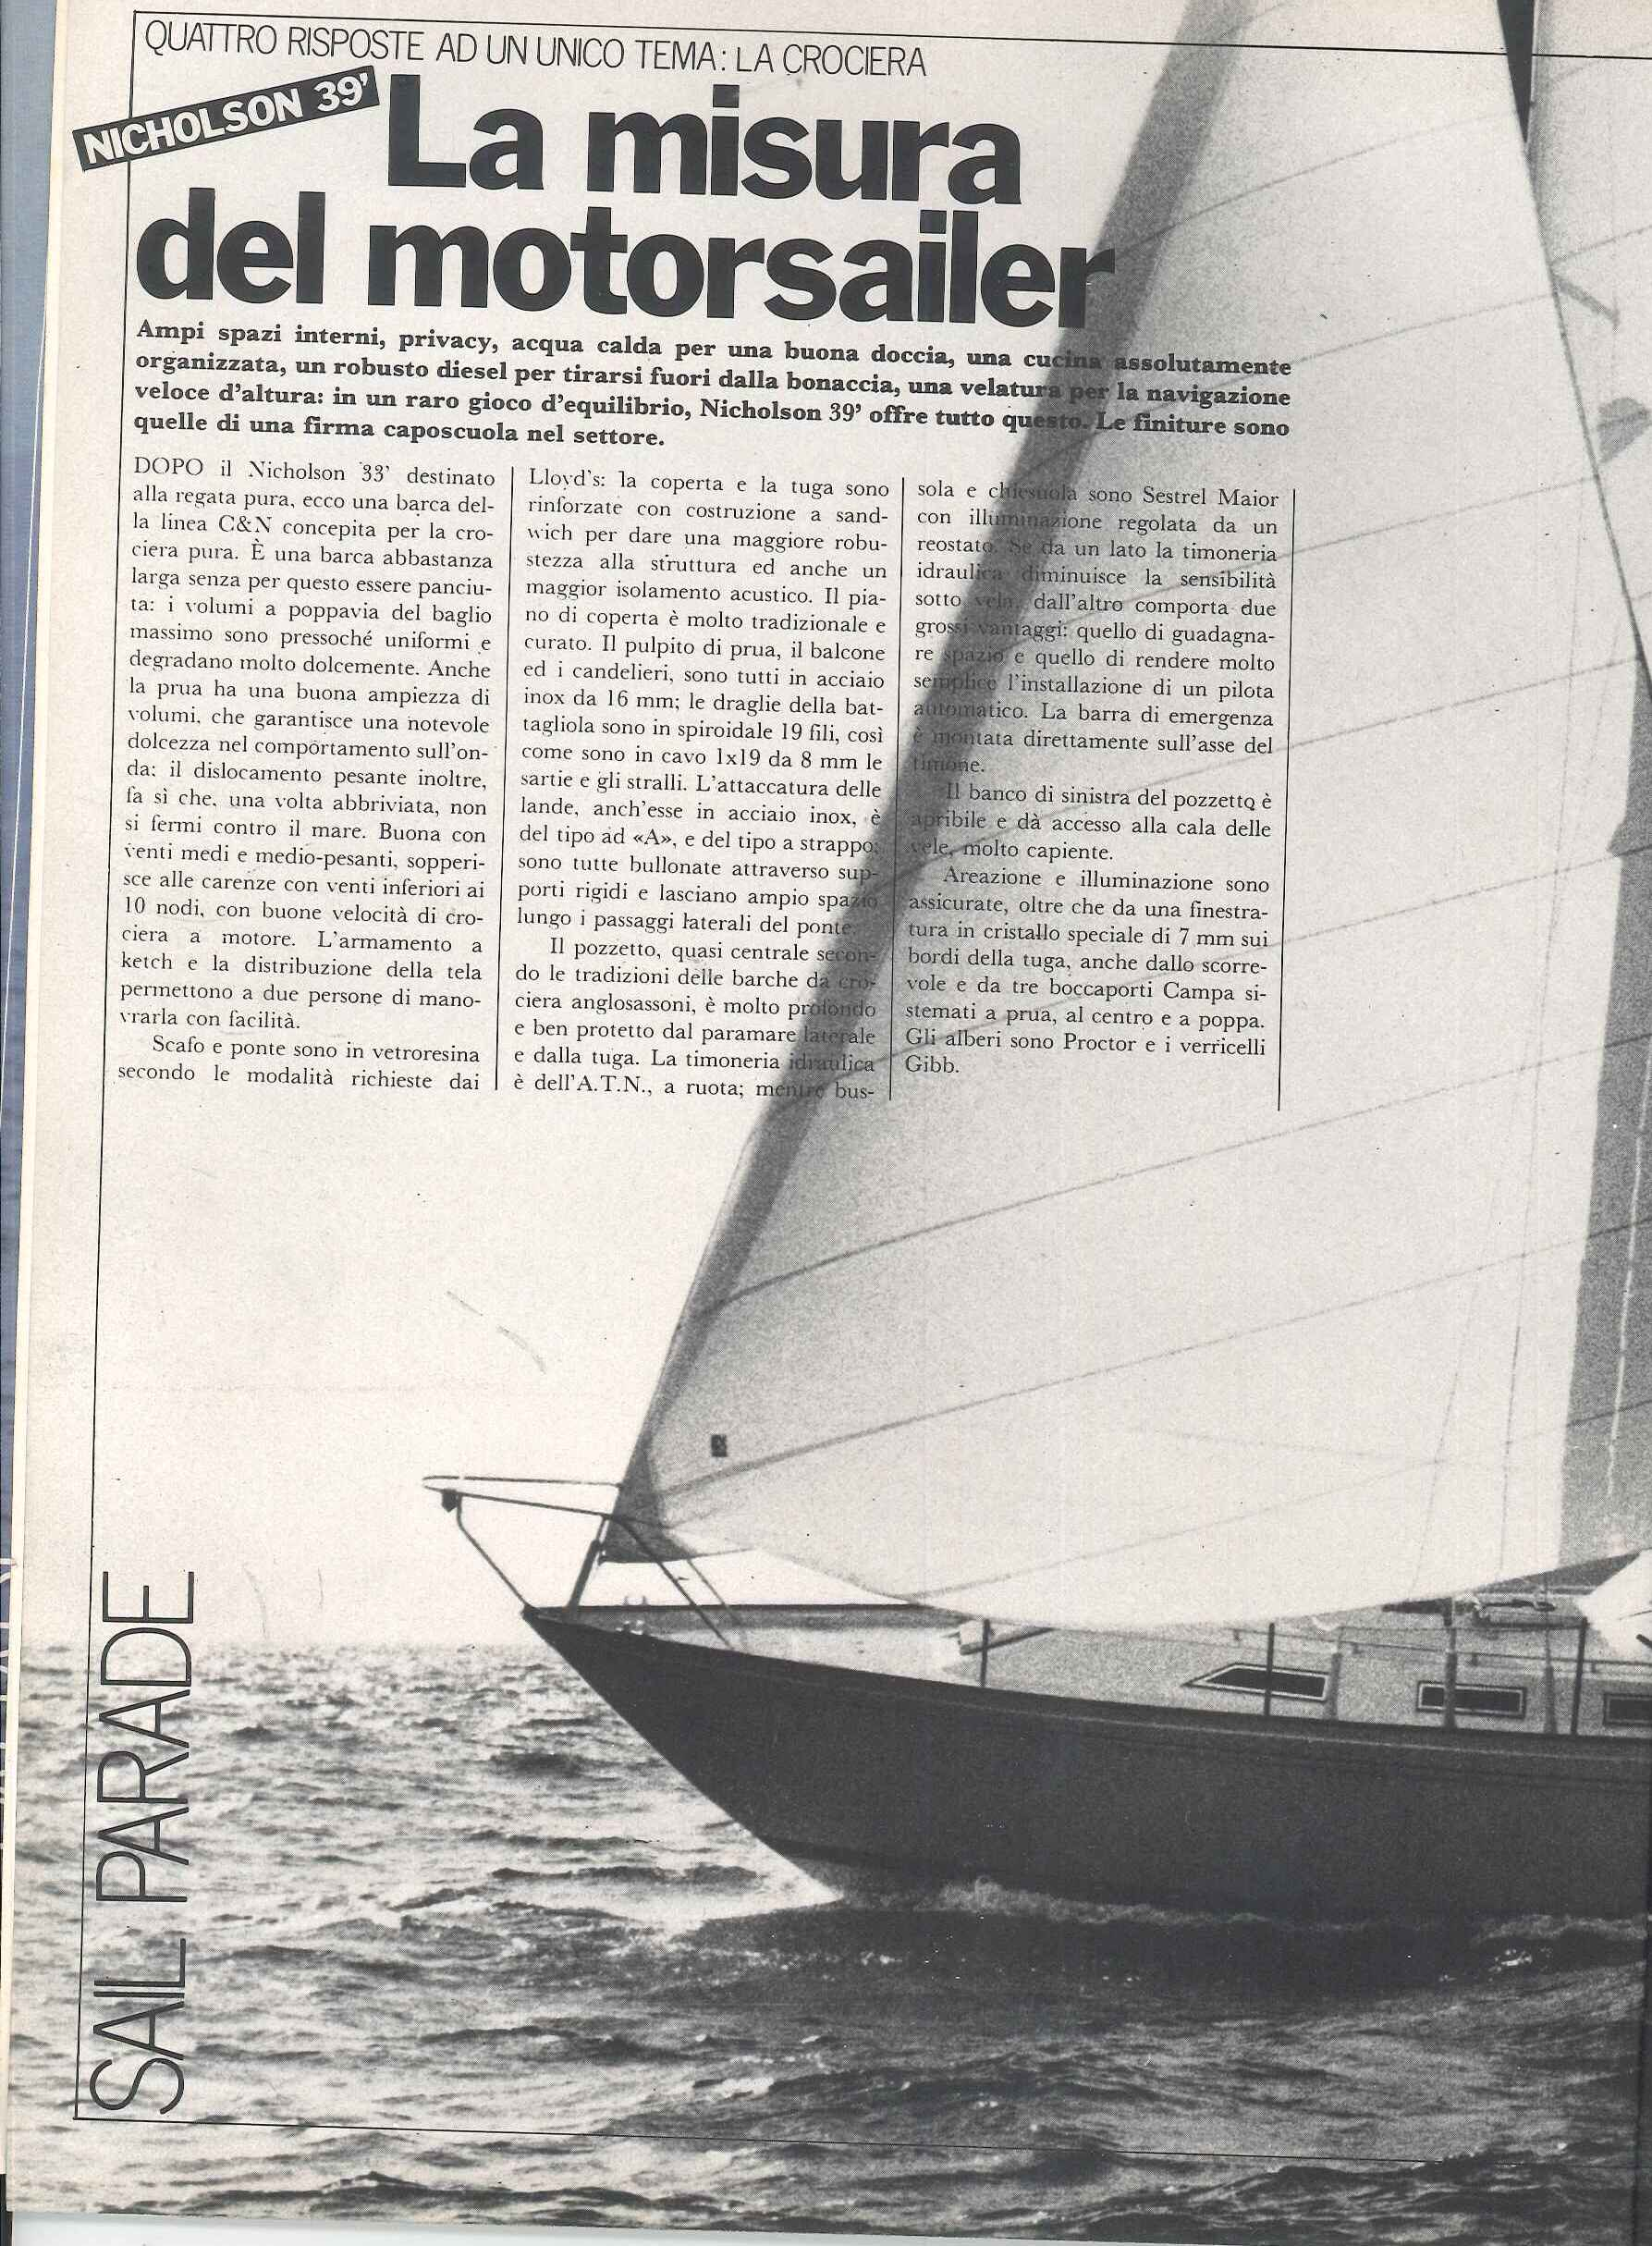 1977 02 PRESS NICHOLSON 39' UOMO MARE N°19 (01).jpg